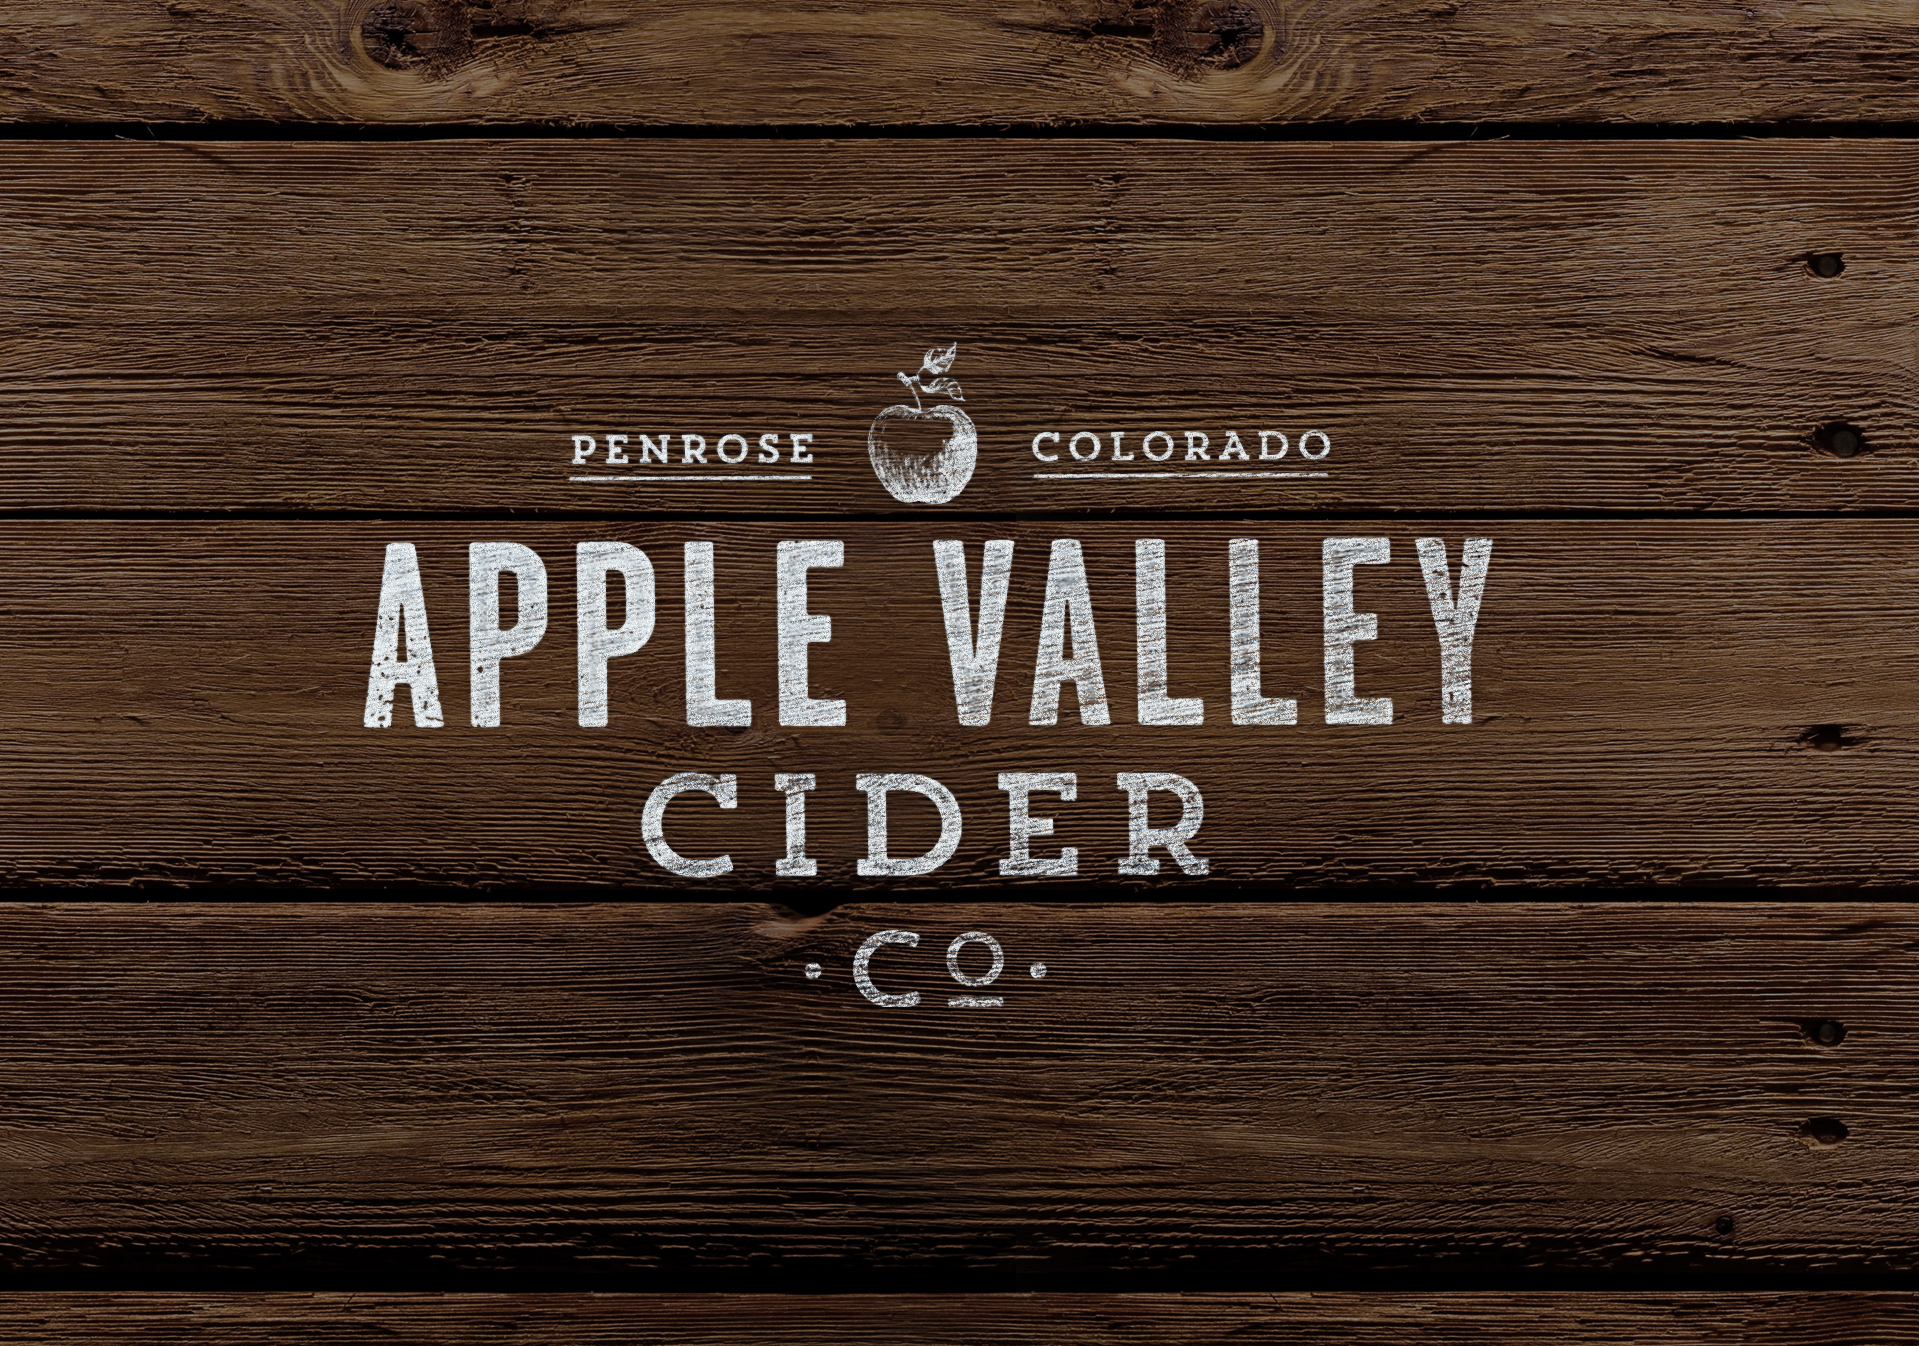 Apple Valley Cider Co.